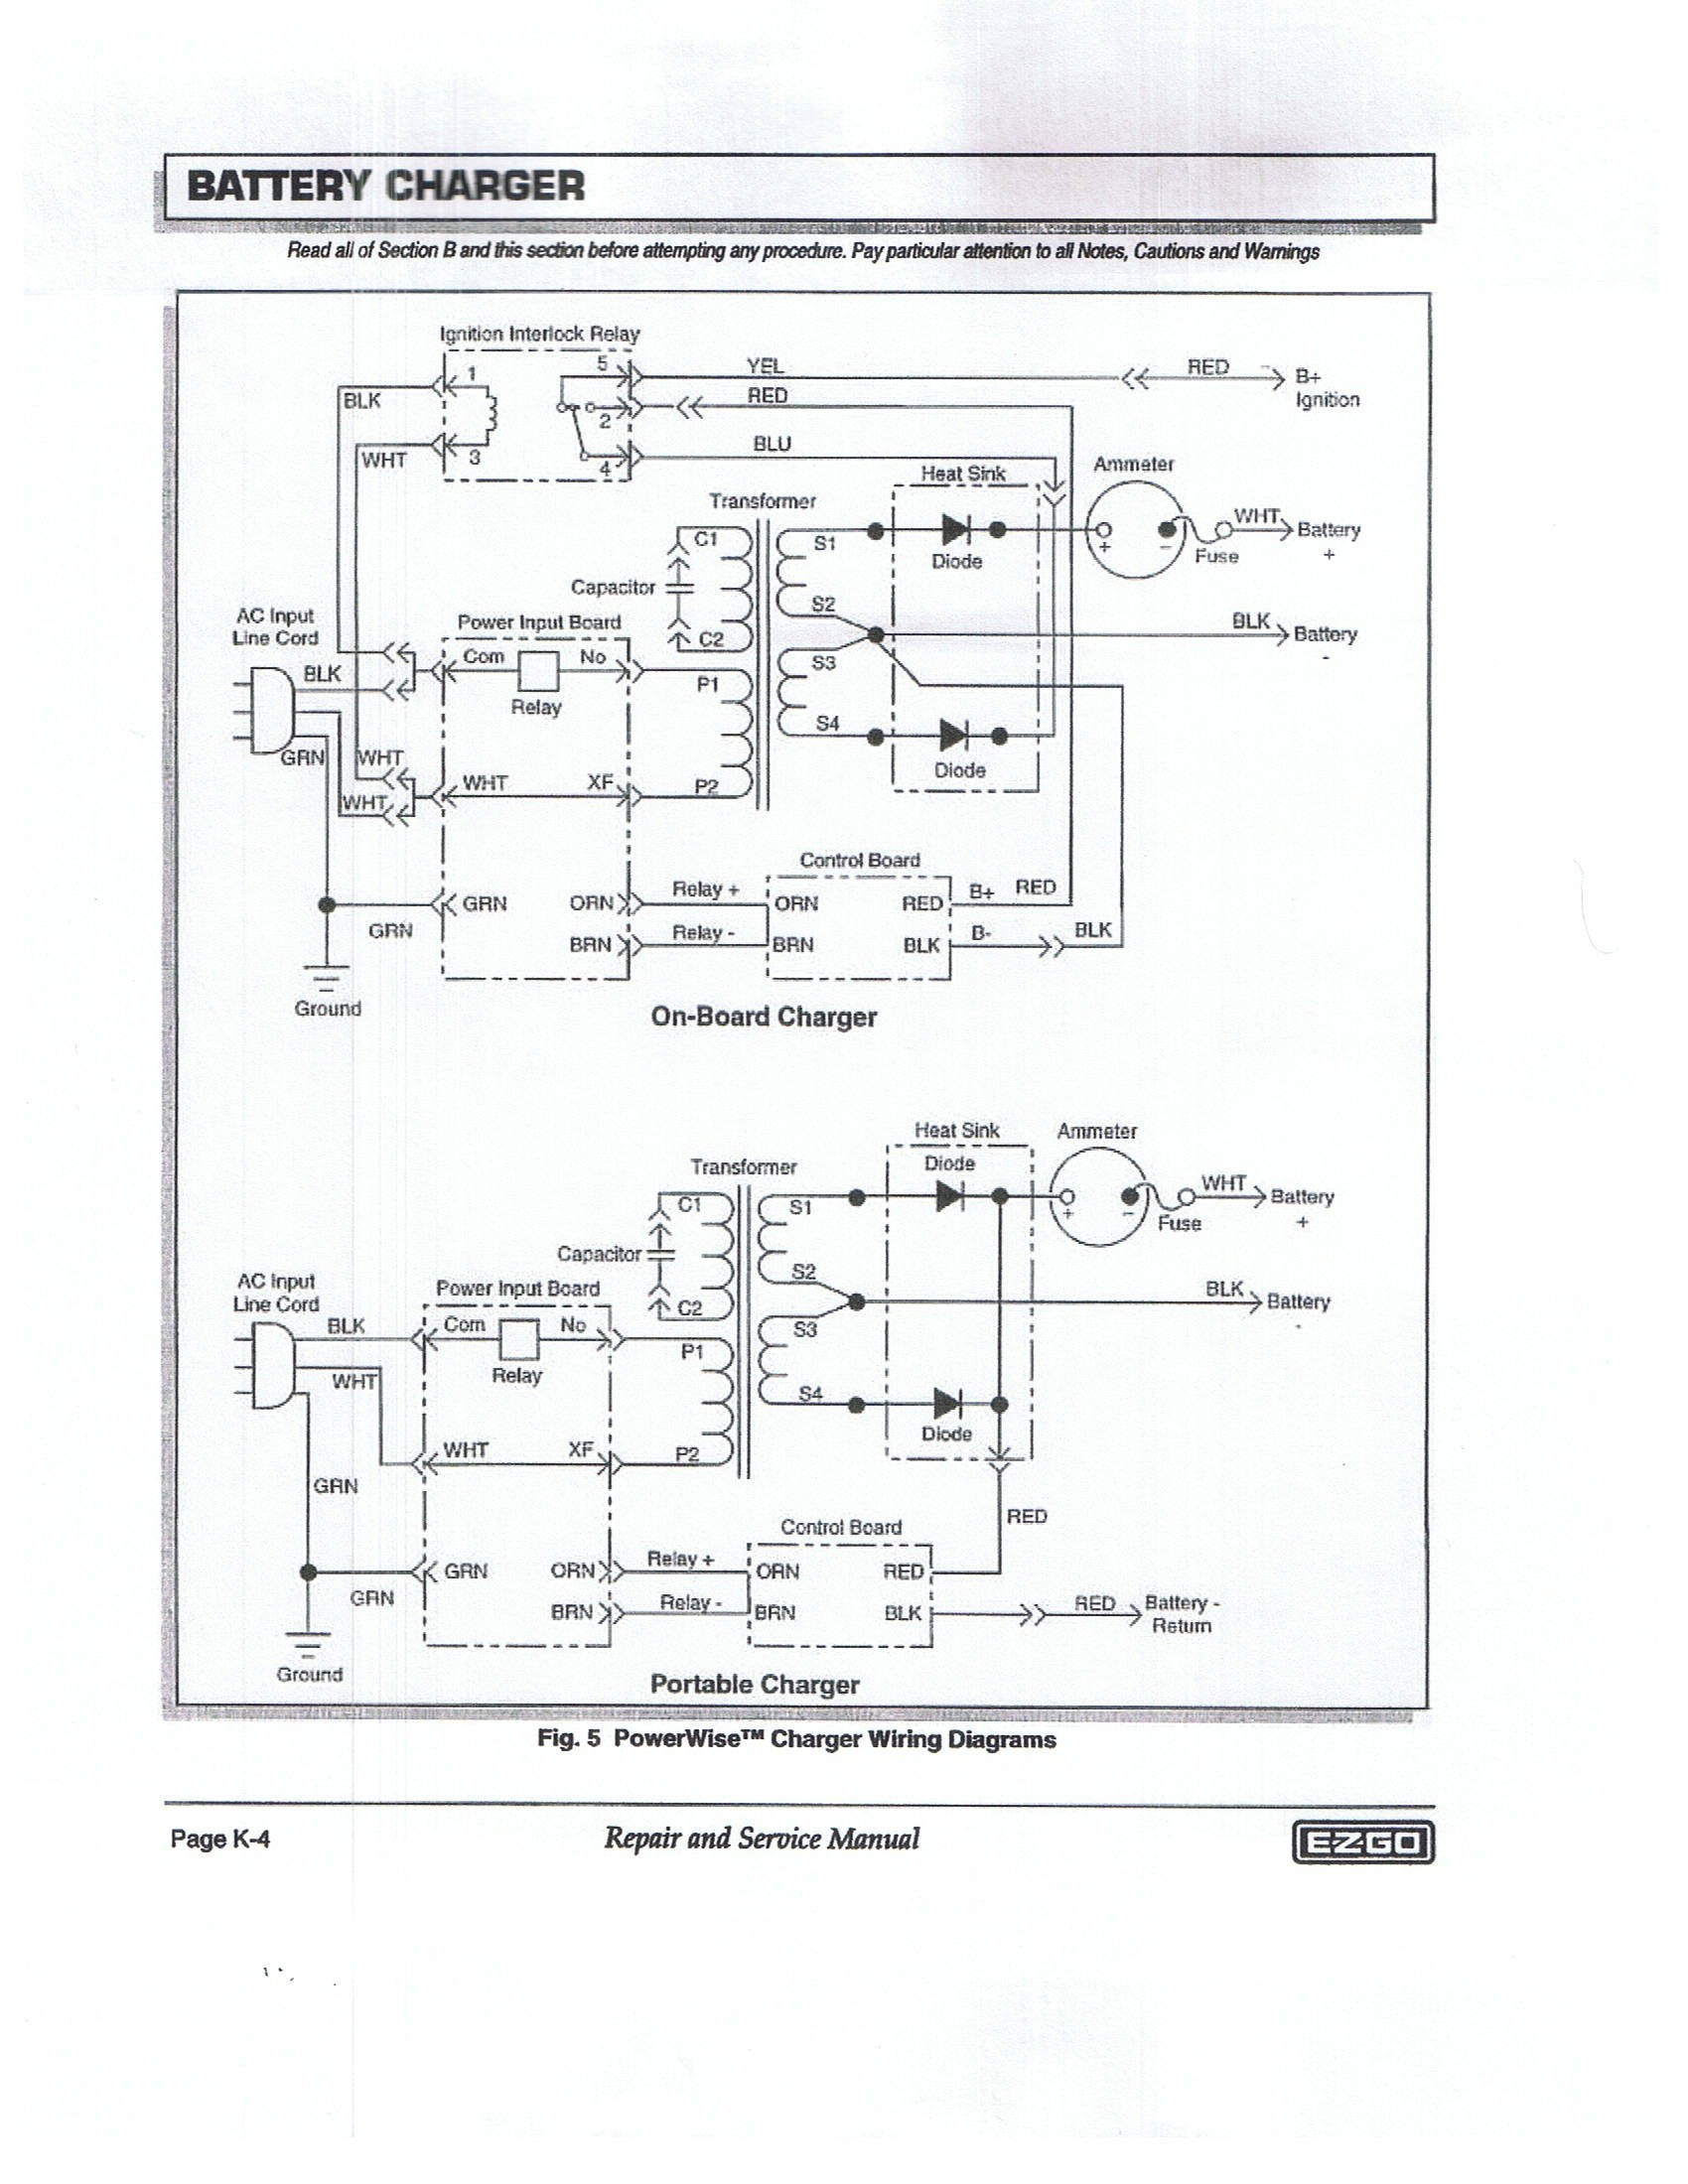 48 Volt Star Golf Cart Wiring Diagram | Wiring Library - Club Car Wiring Diagram 48 Volt